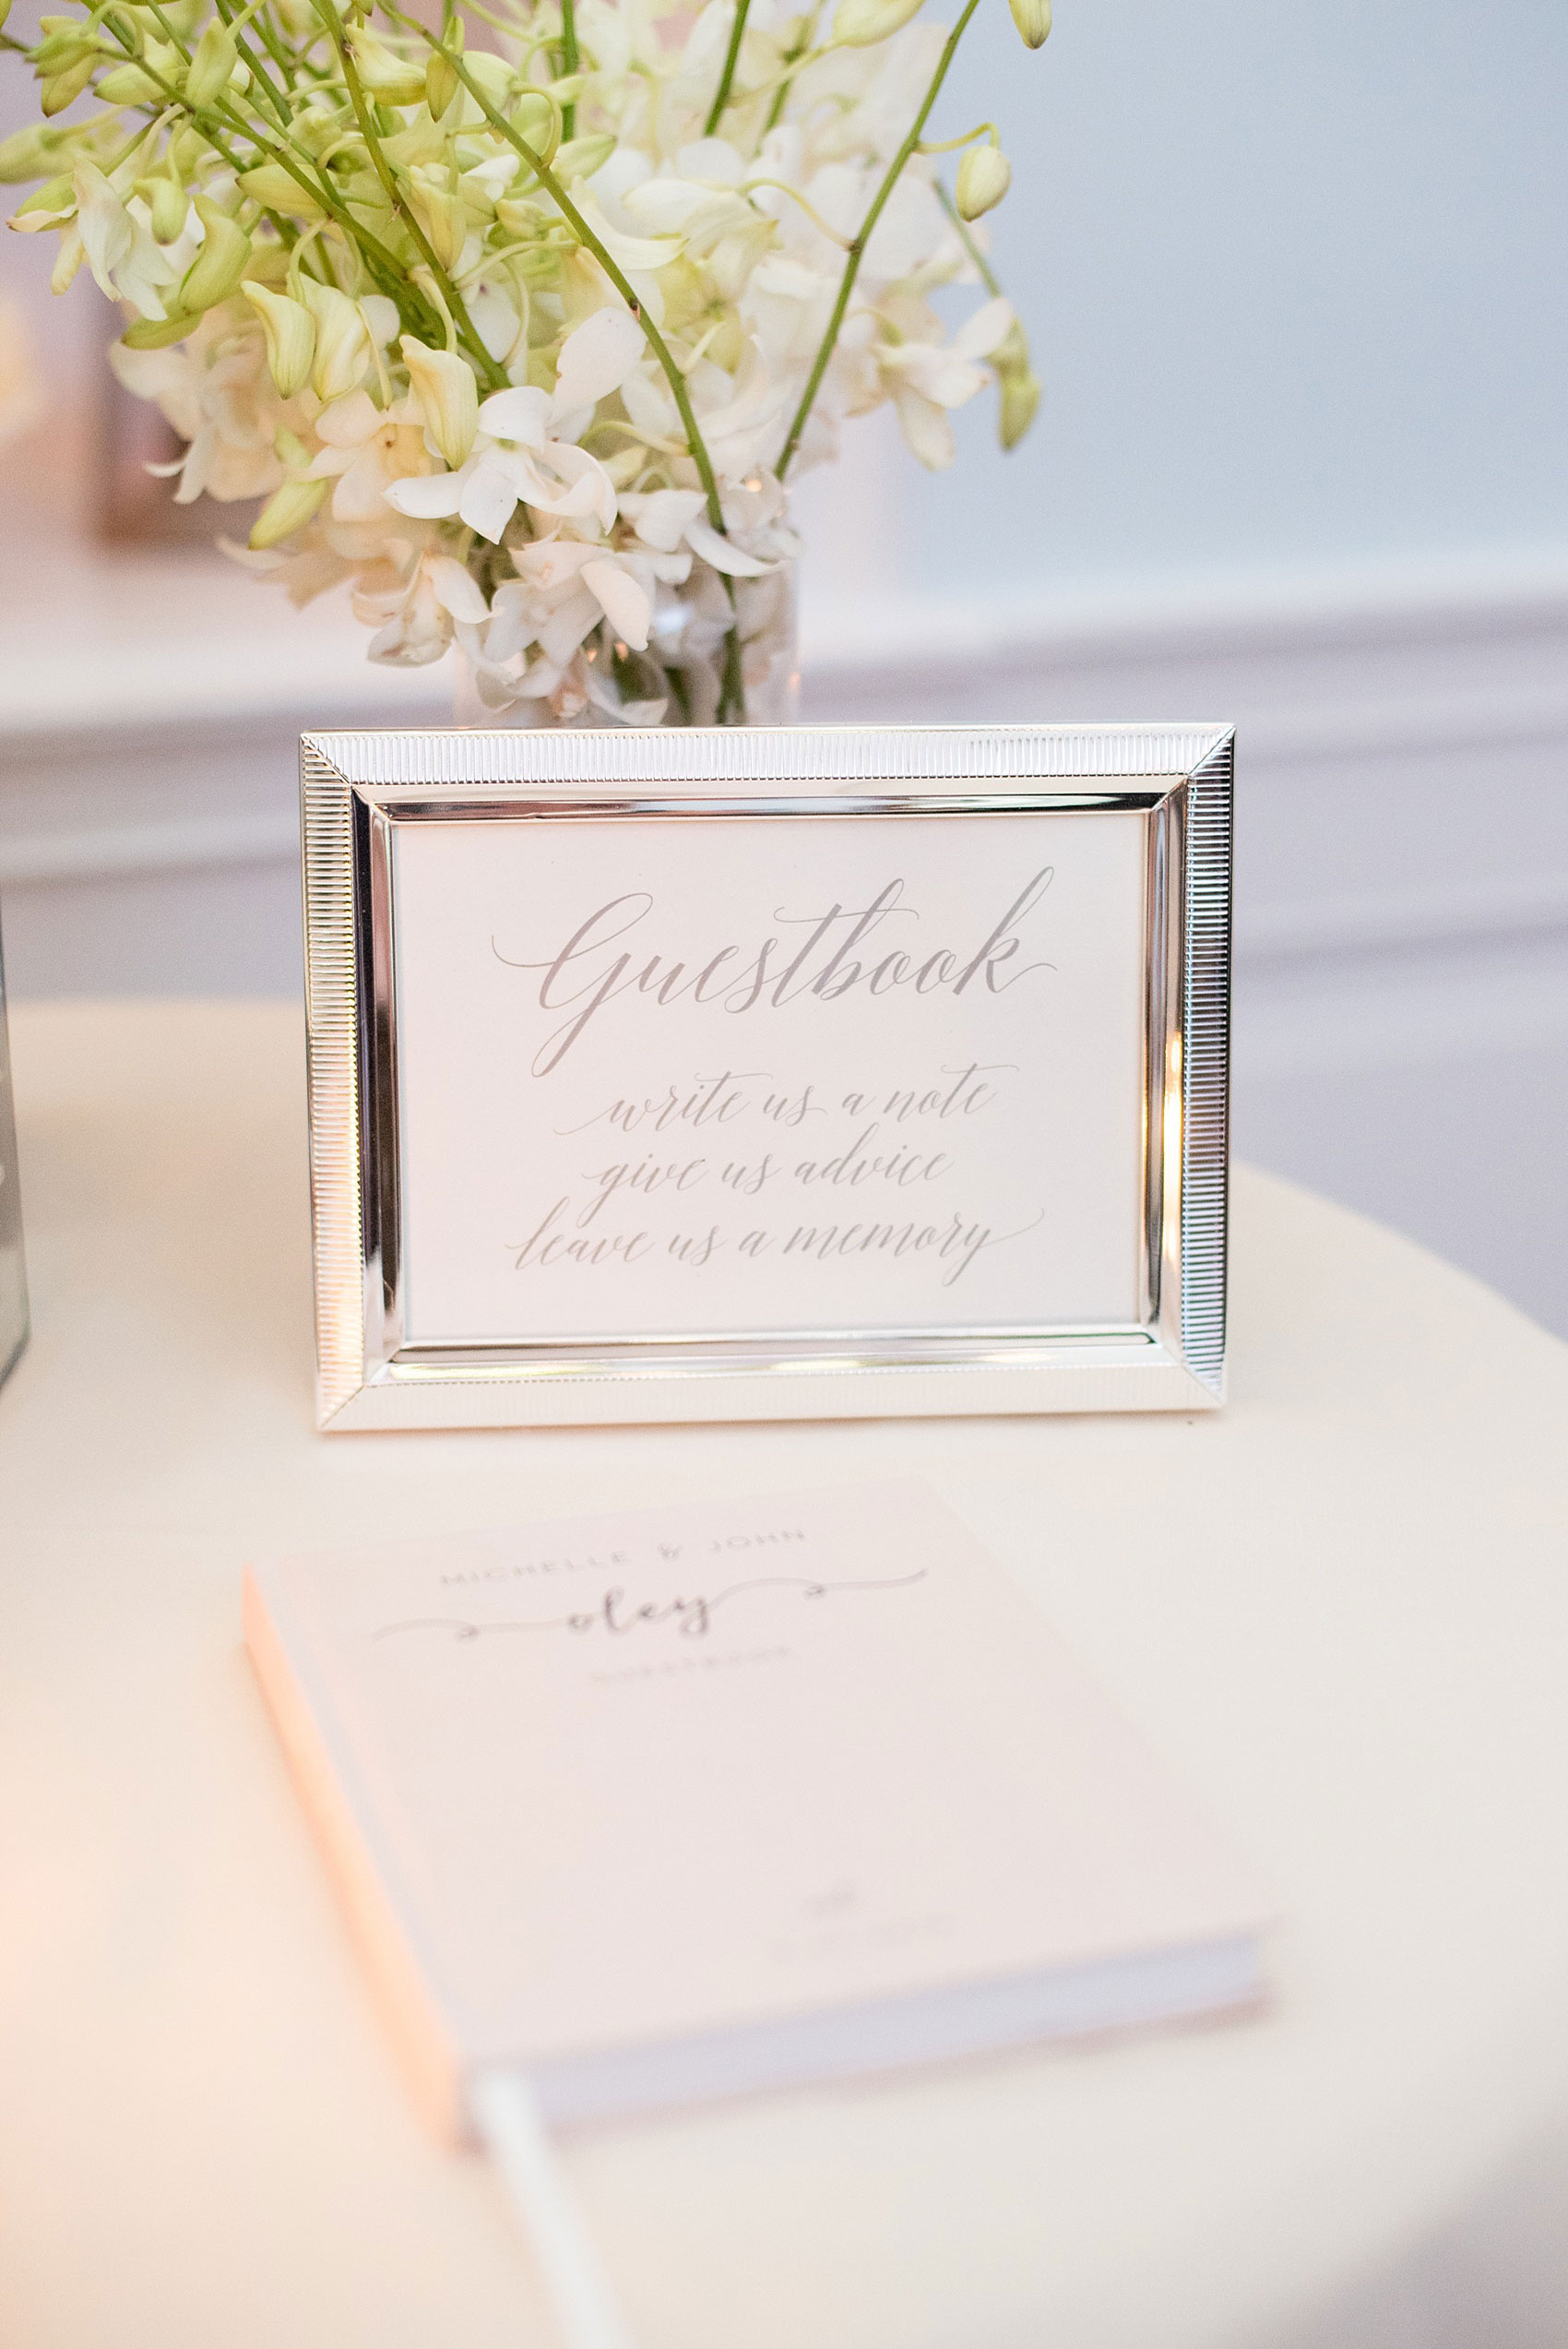 Mikkel Paige Photography photos of a luxury wedding in NYC. Image of the India House reception with calligraphy sign for the guestbook.